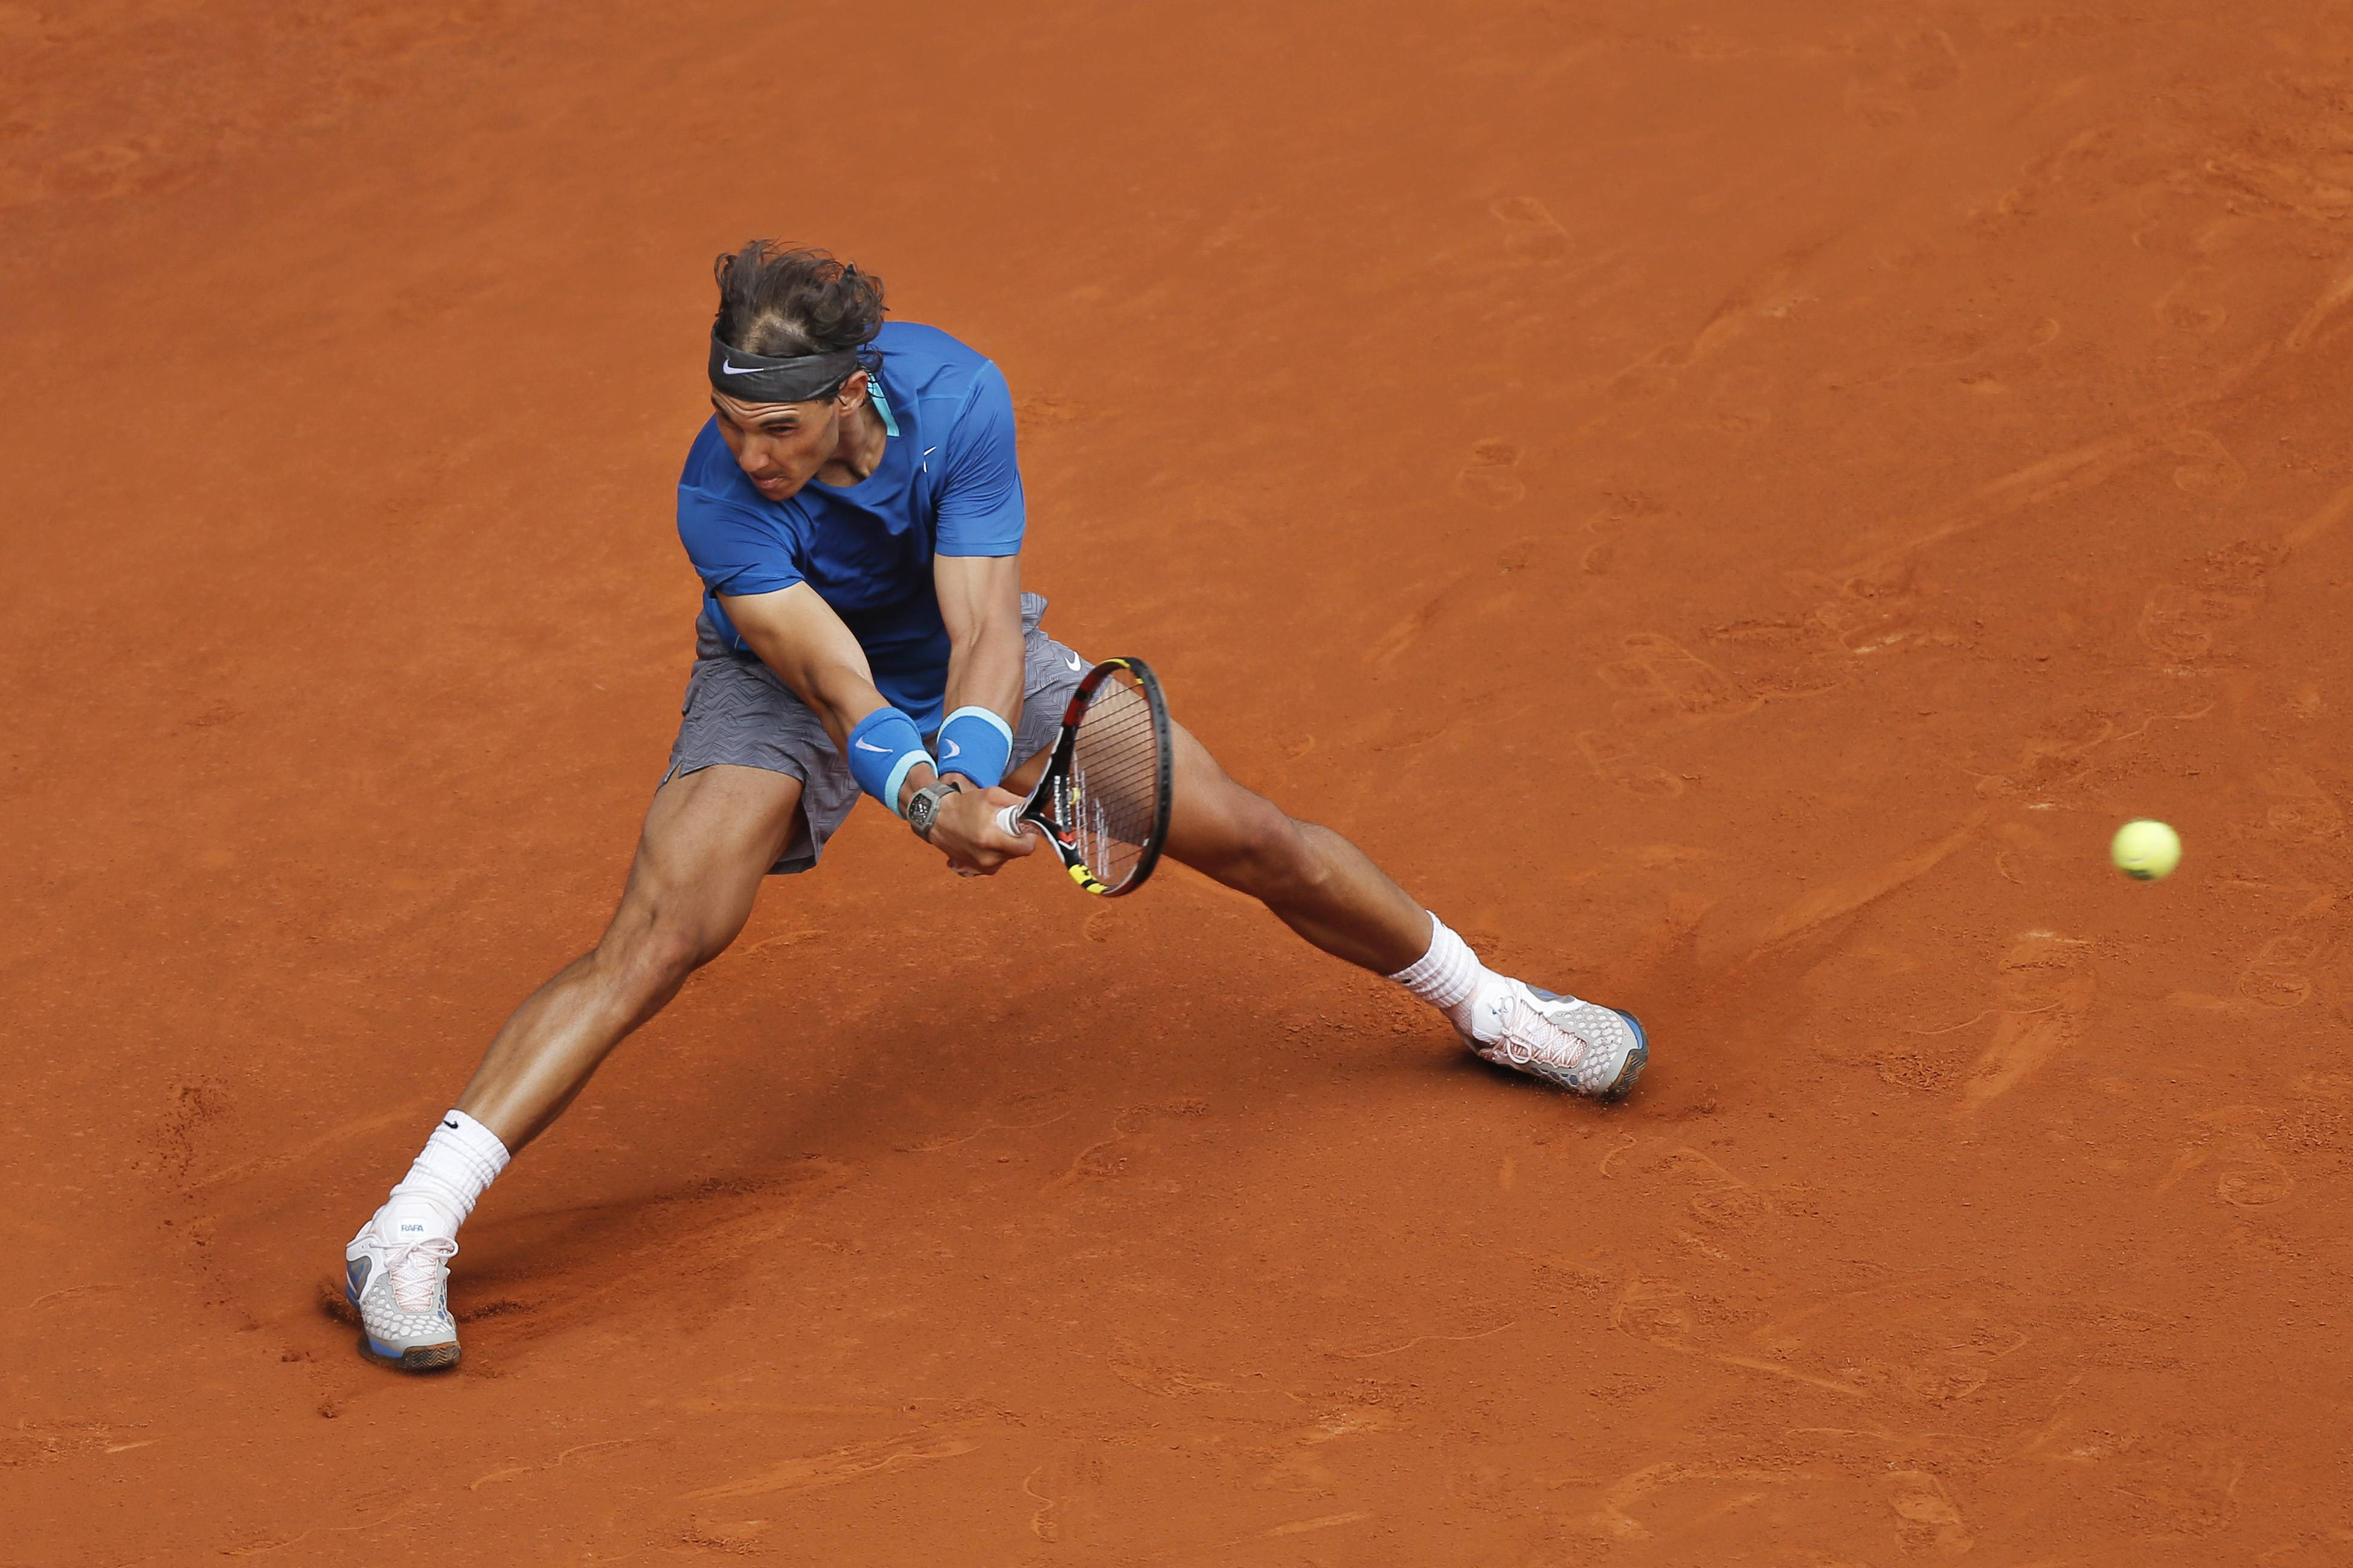 Rafael Nadal from Spain returns a ball during a Madrid Open tennis tournament match against Juan Monaco from Argentina, in Madrid, Spain, Wednesday, May 7, 2014.